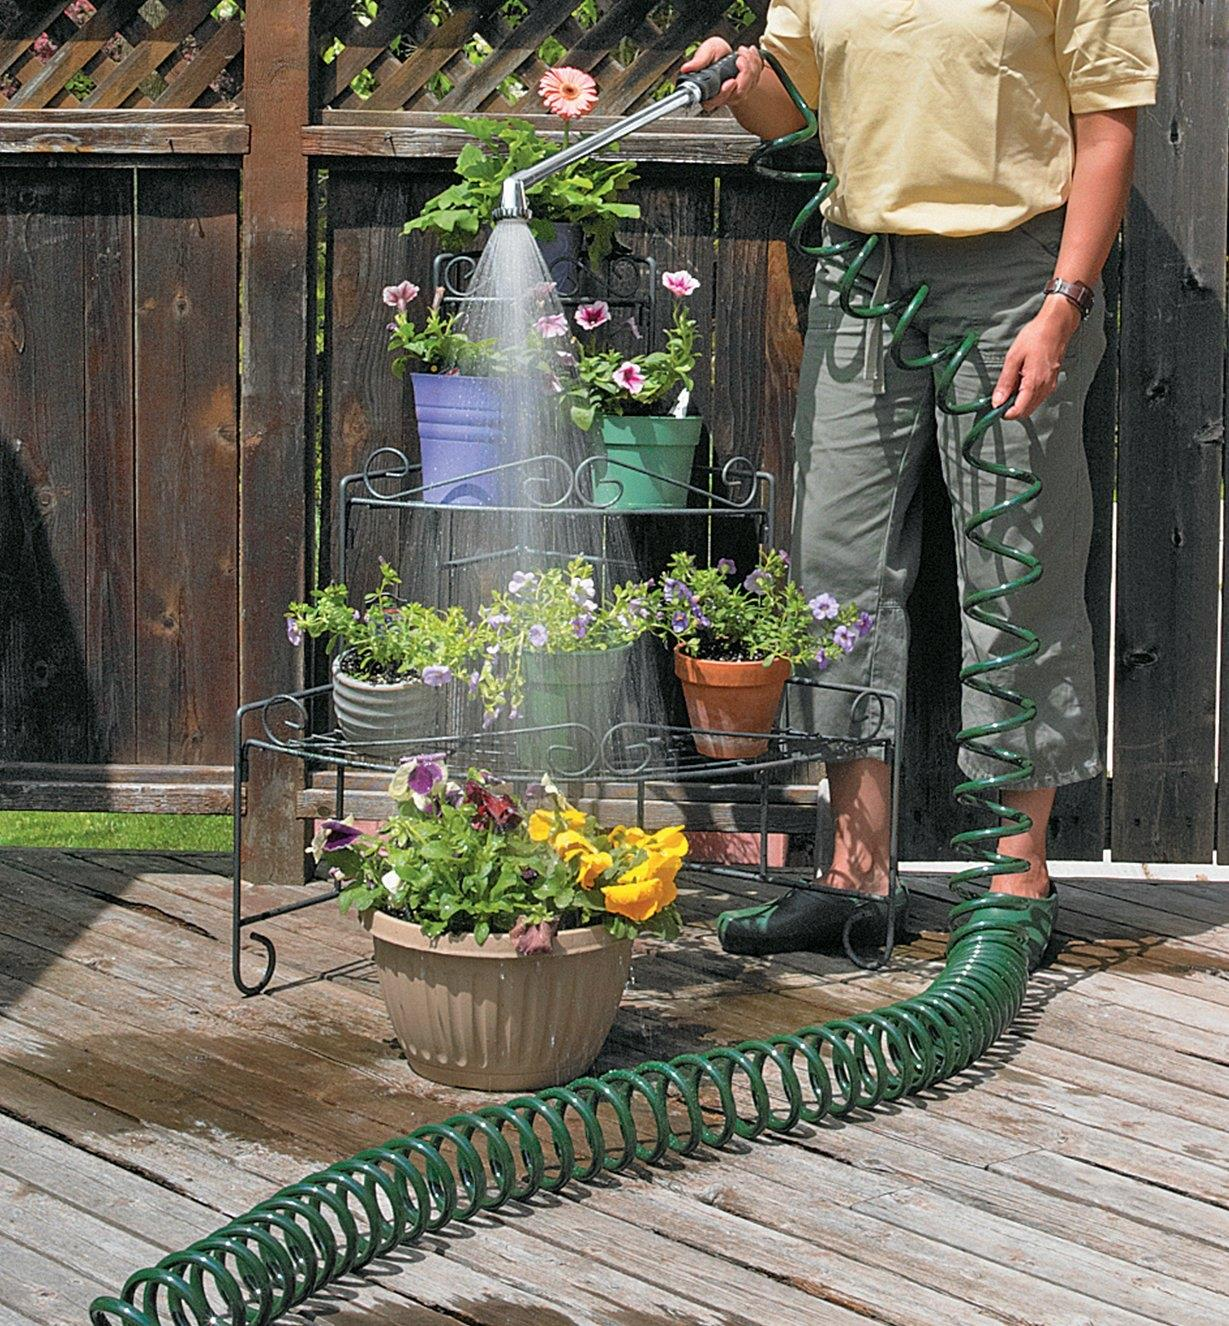 Using the Deluxe Watering Set to water potted plants on a plants stand